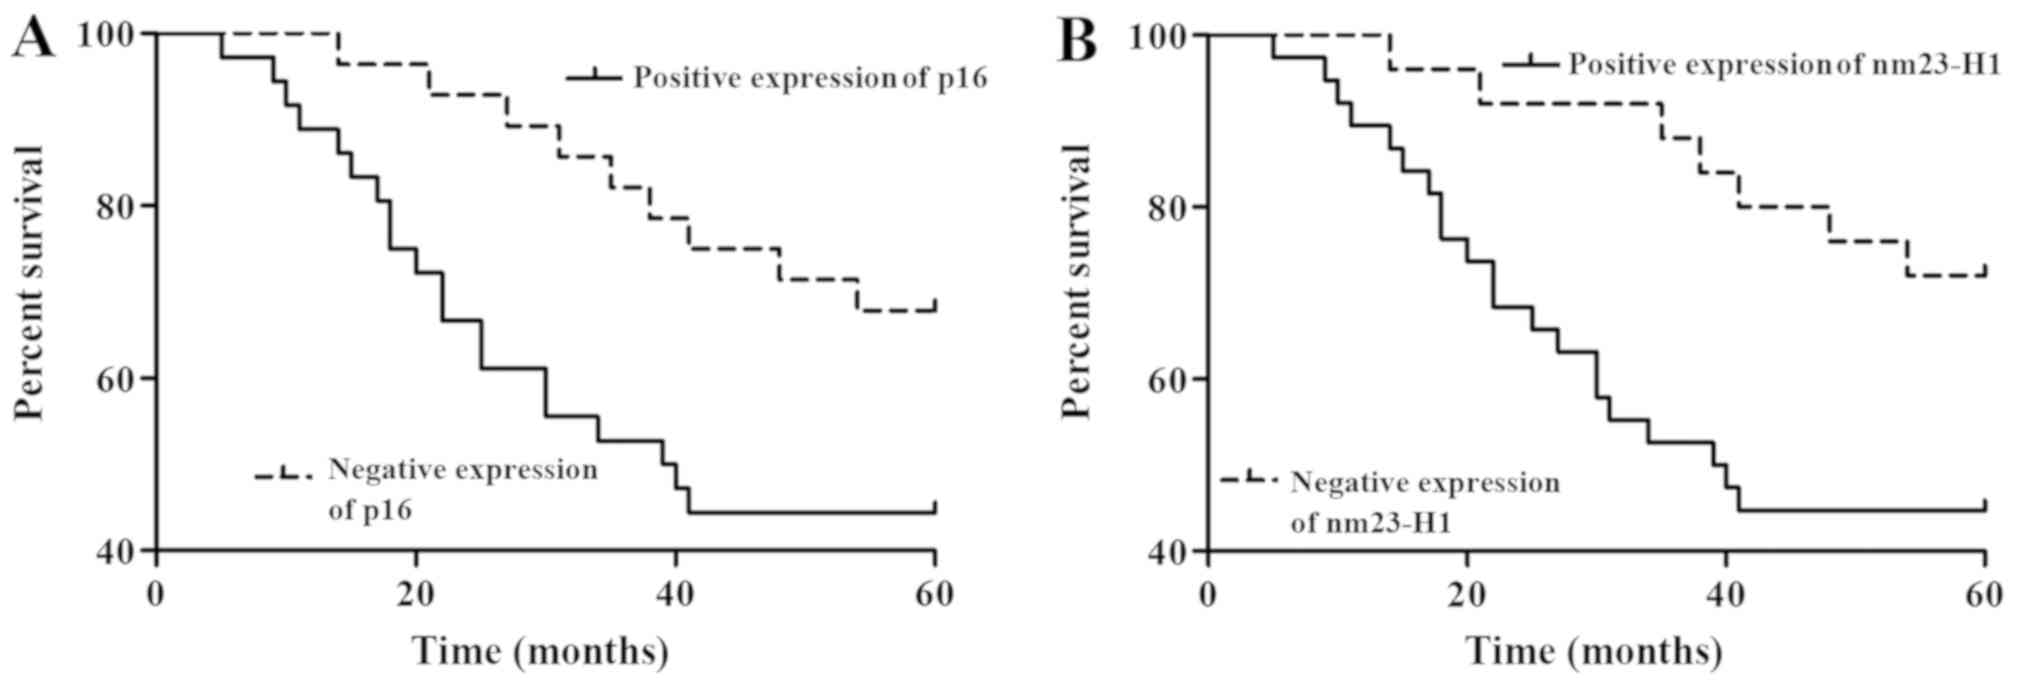 Correlation of p16 and nm23-H1 expression levels with